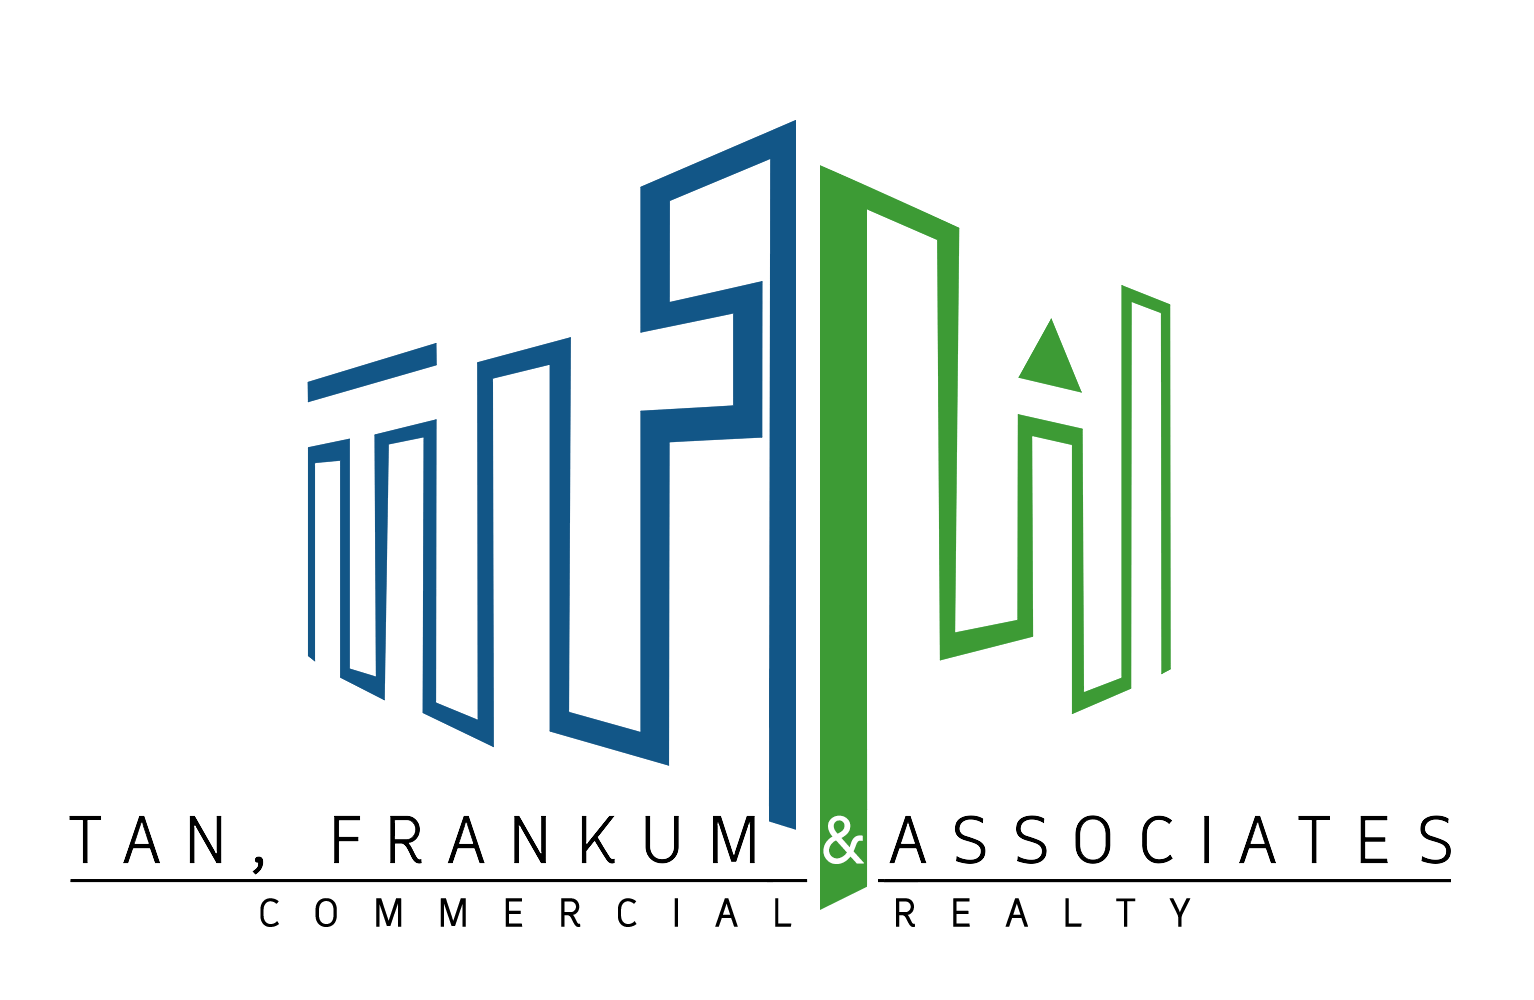 Tan, Frankum & Associates Commercial Reaty